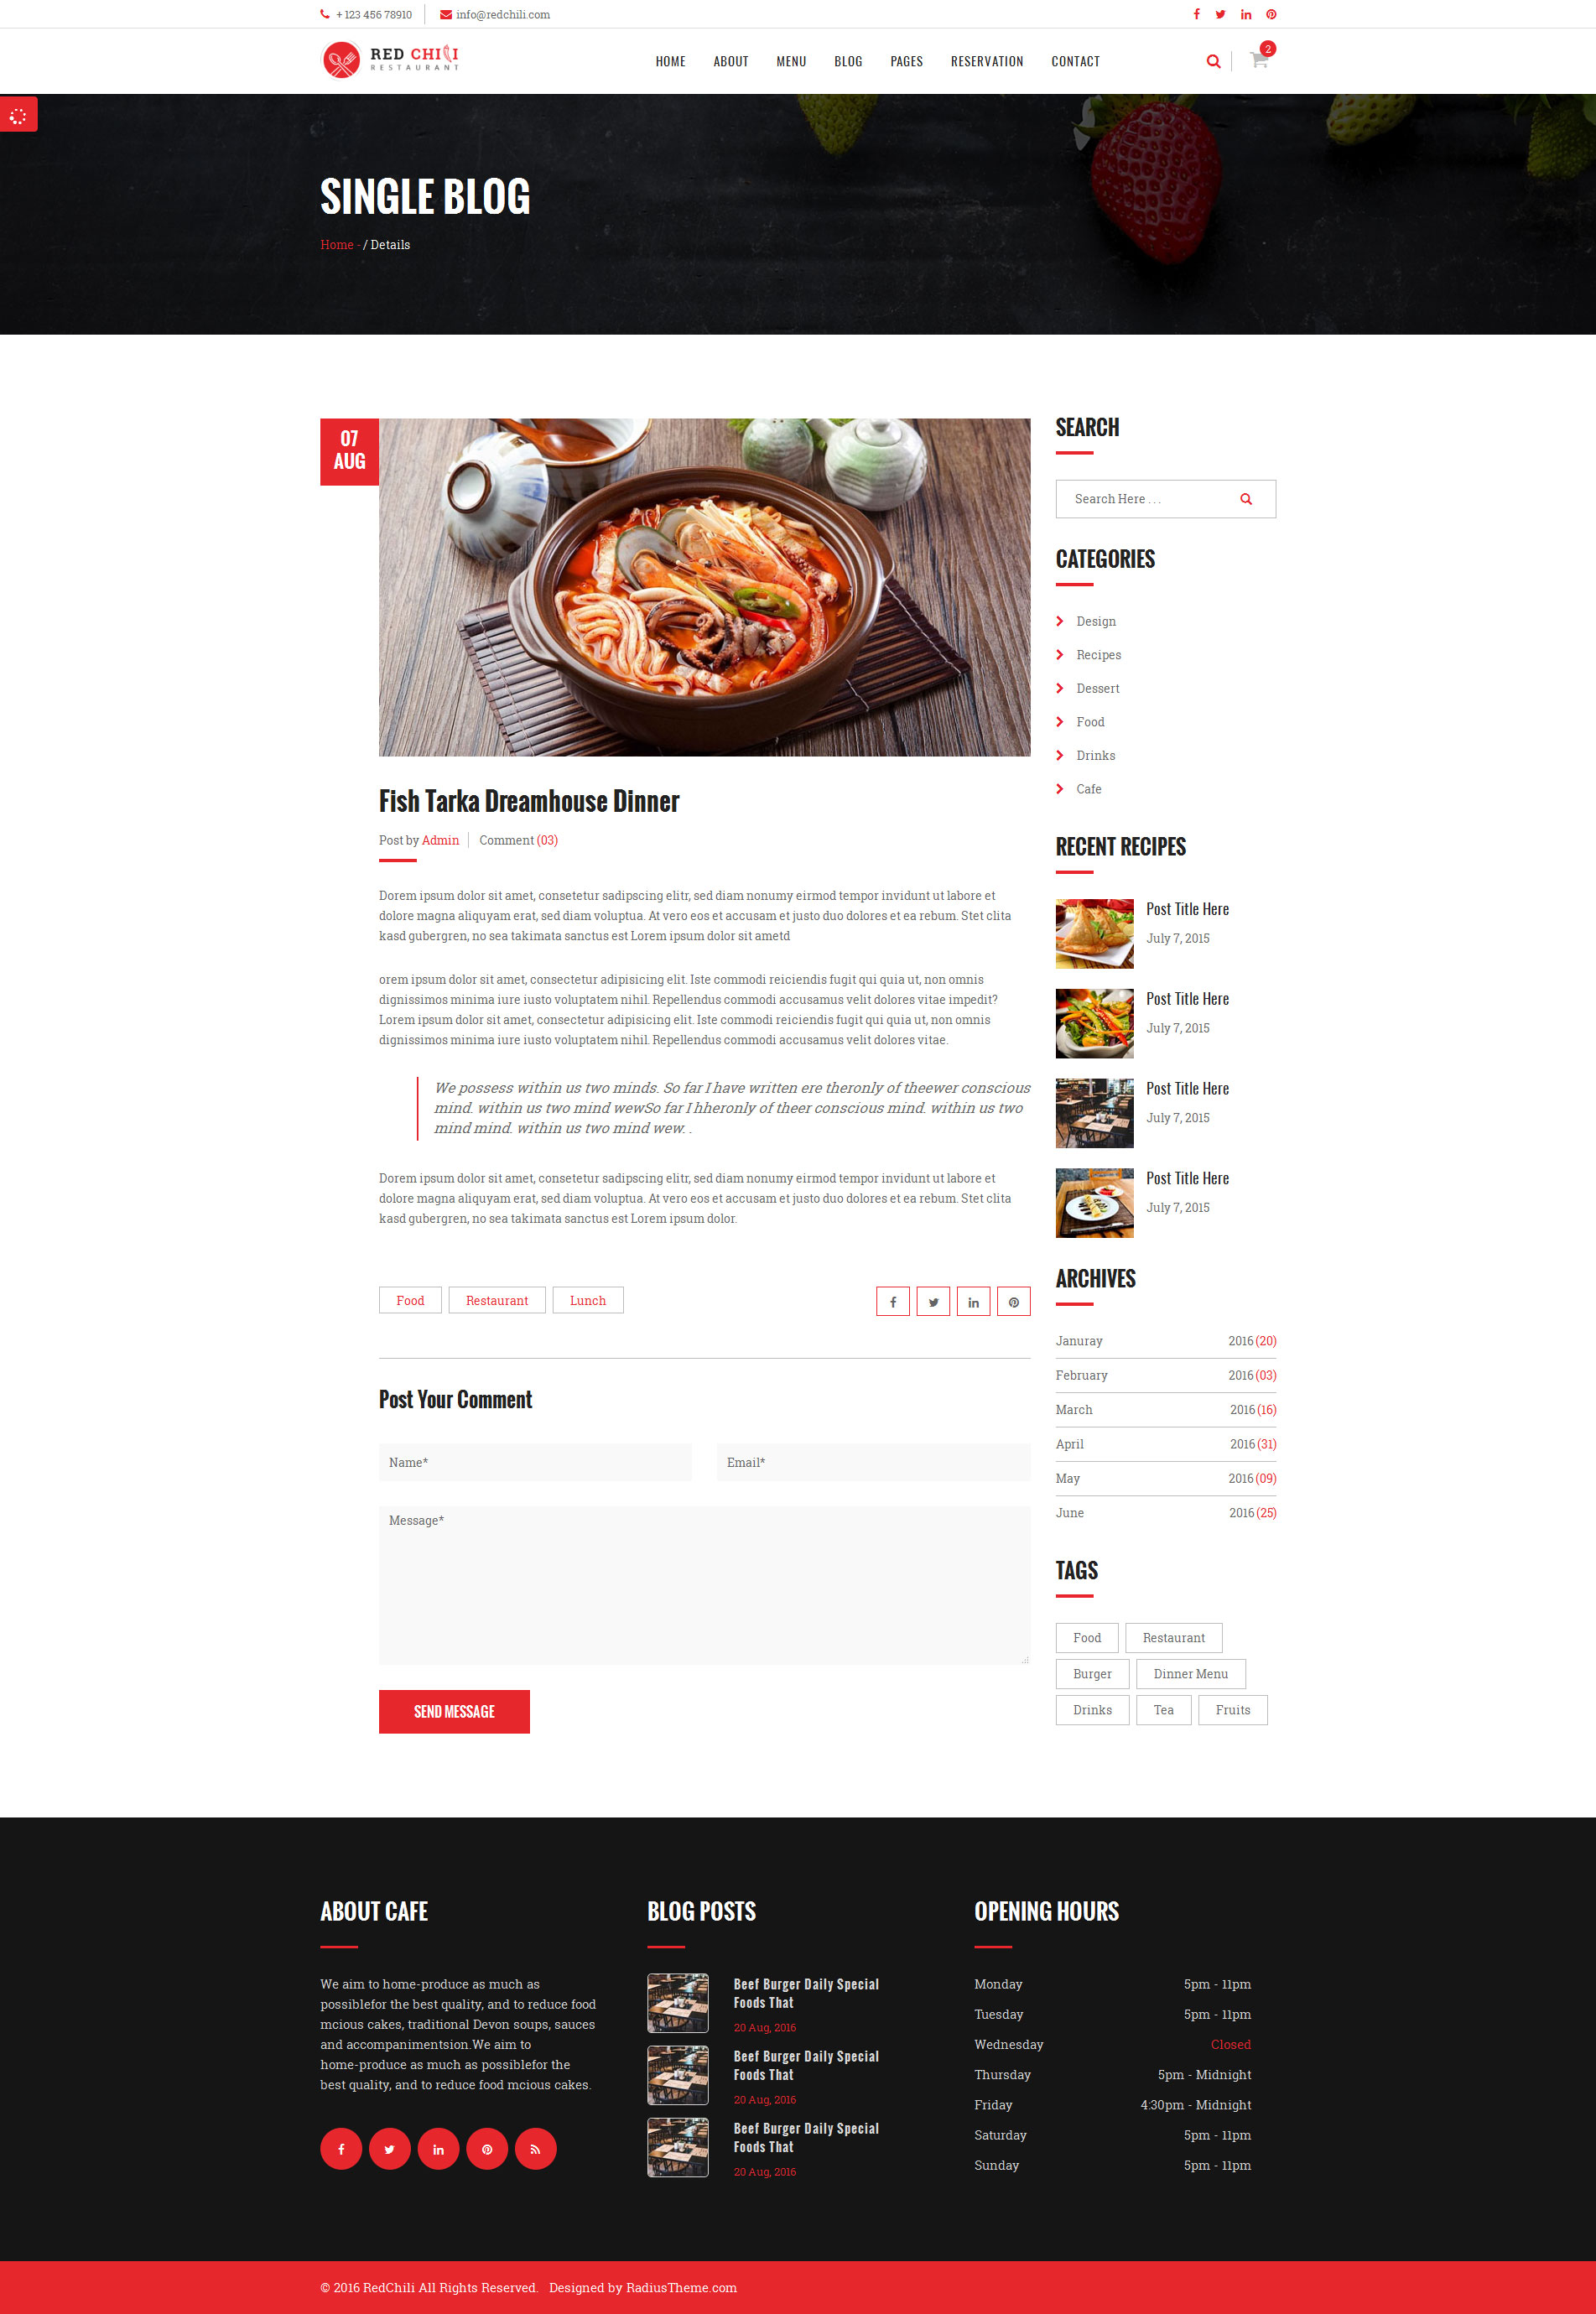 Red Chili - Restaurant HTML5 Template by RadiusTheme ...